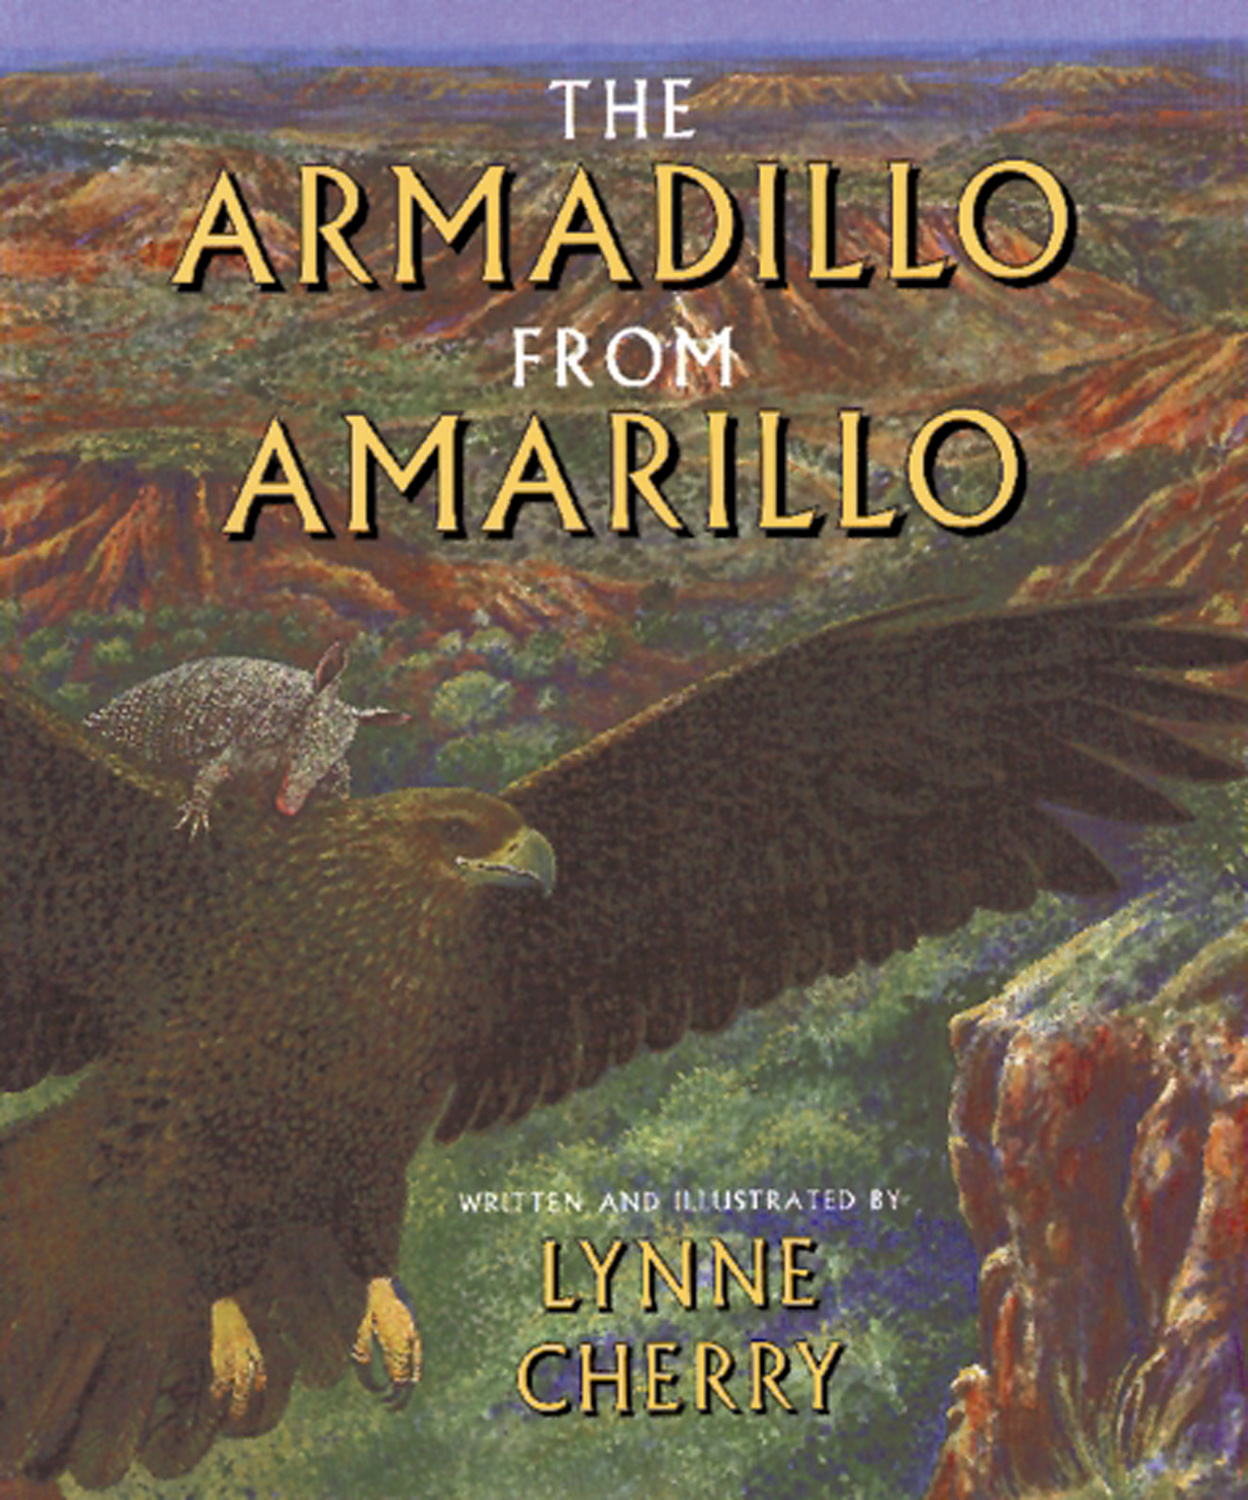 The Armadillo from Amarillo-9780152019556